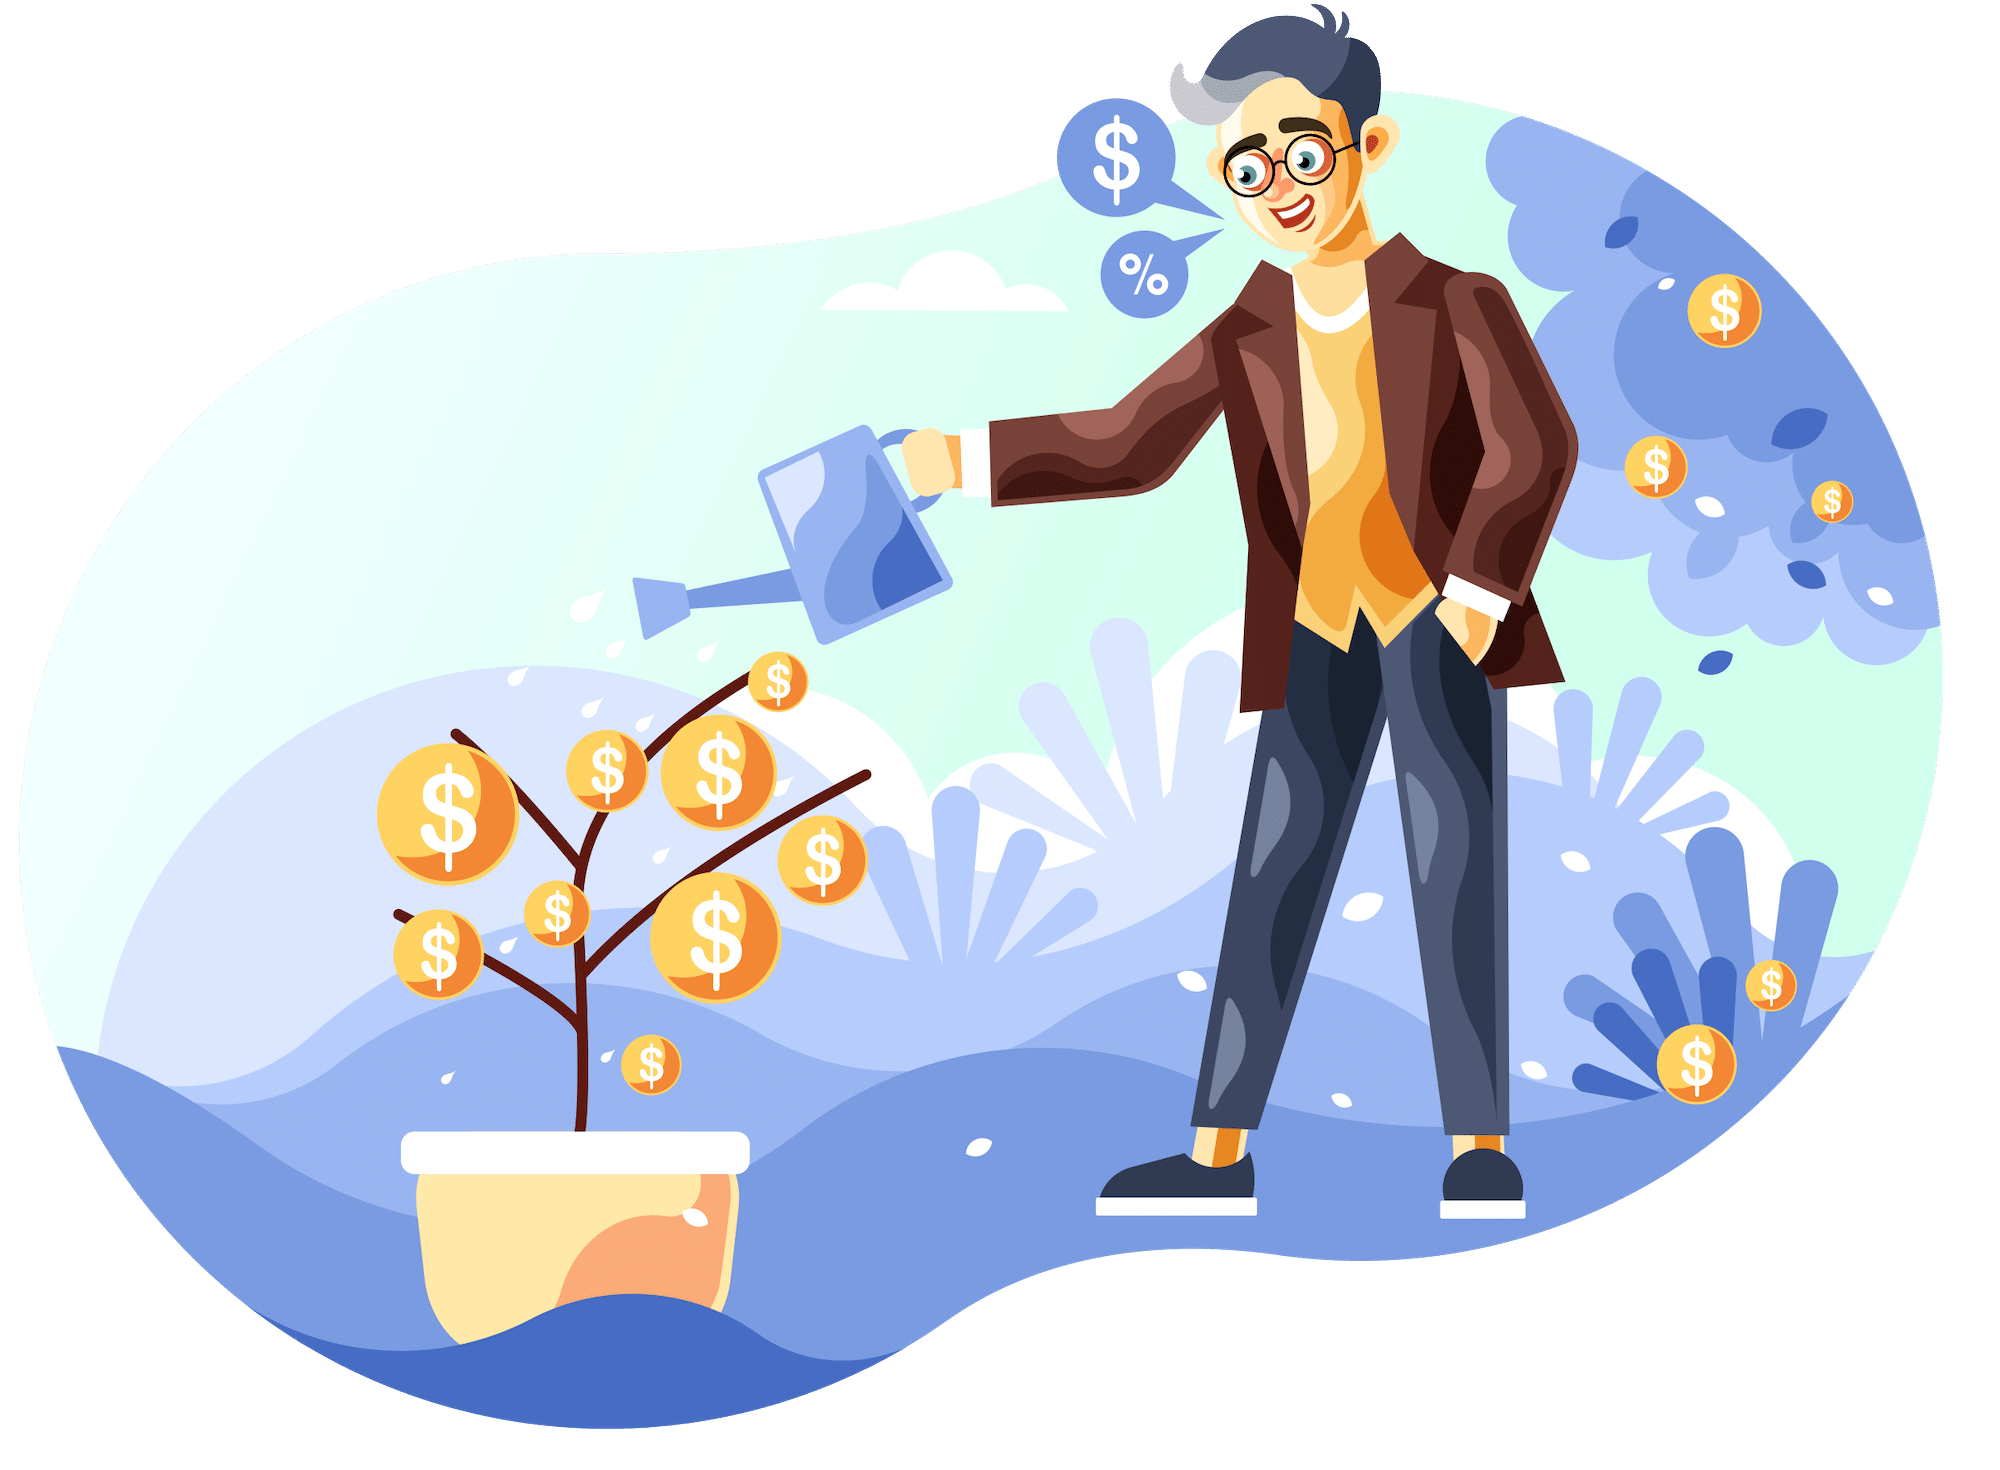 Graphic of a man watering a money tree